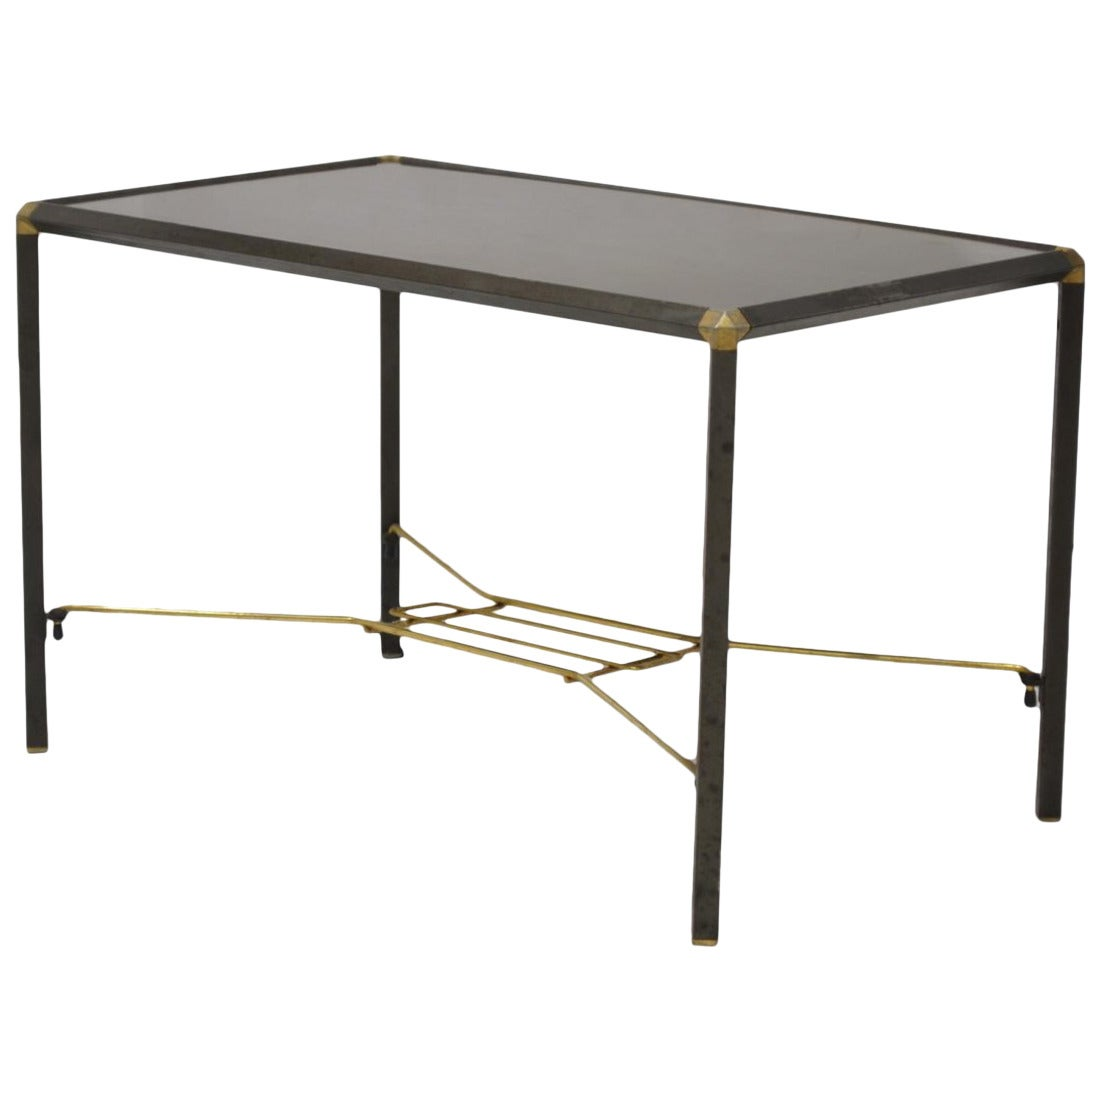 Italian wood and steel coffee table for sale at 1stdibs - Archives departementales 33 tables decennales ...